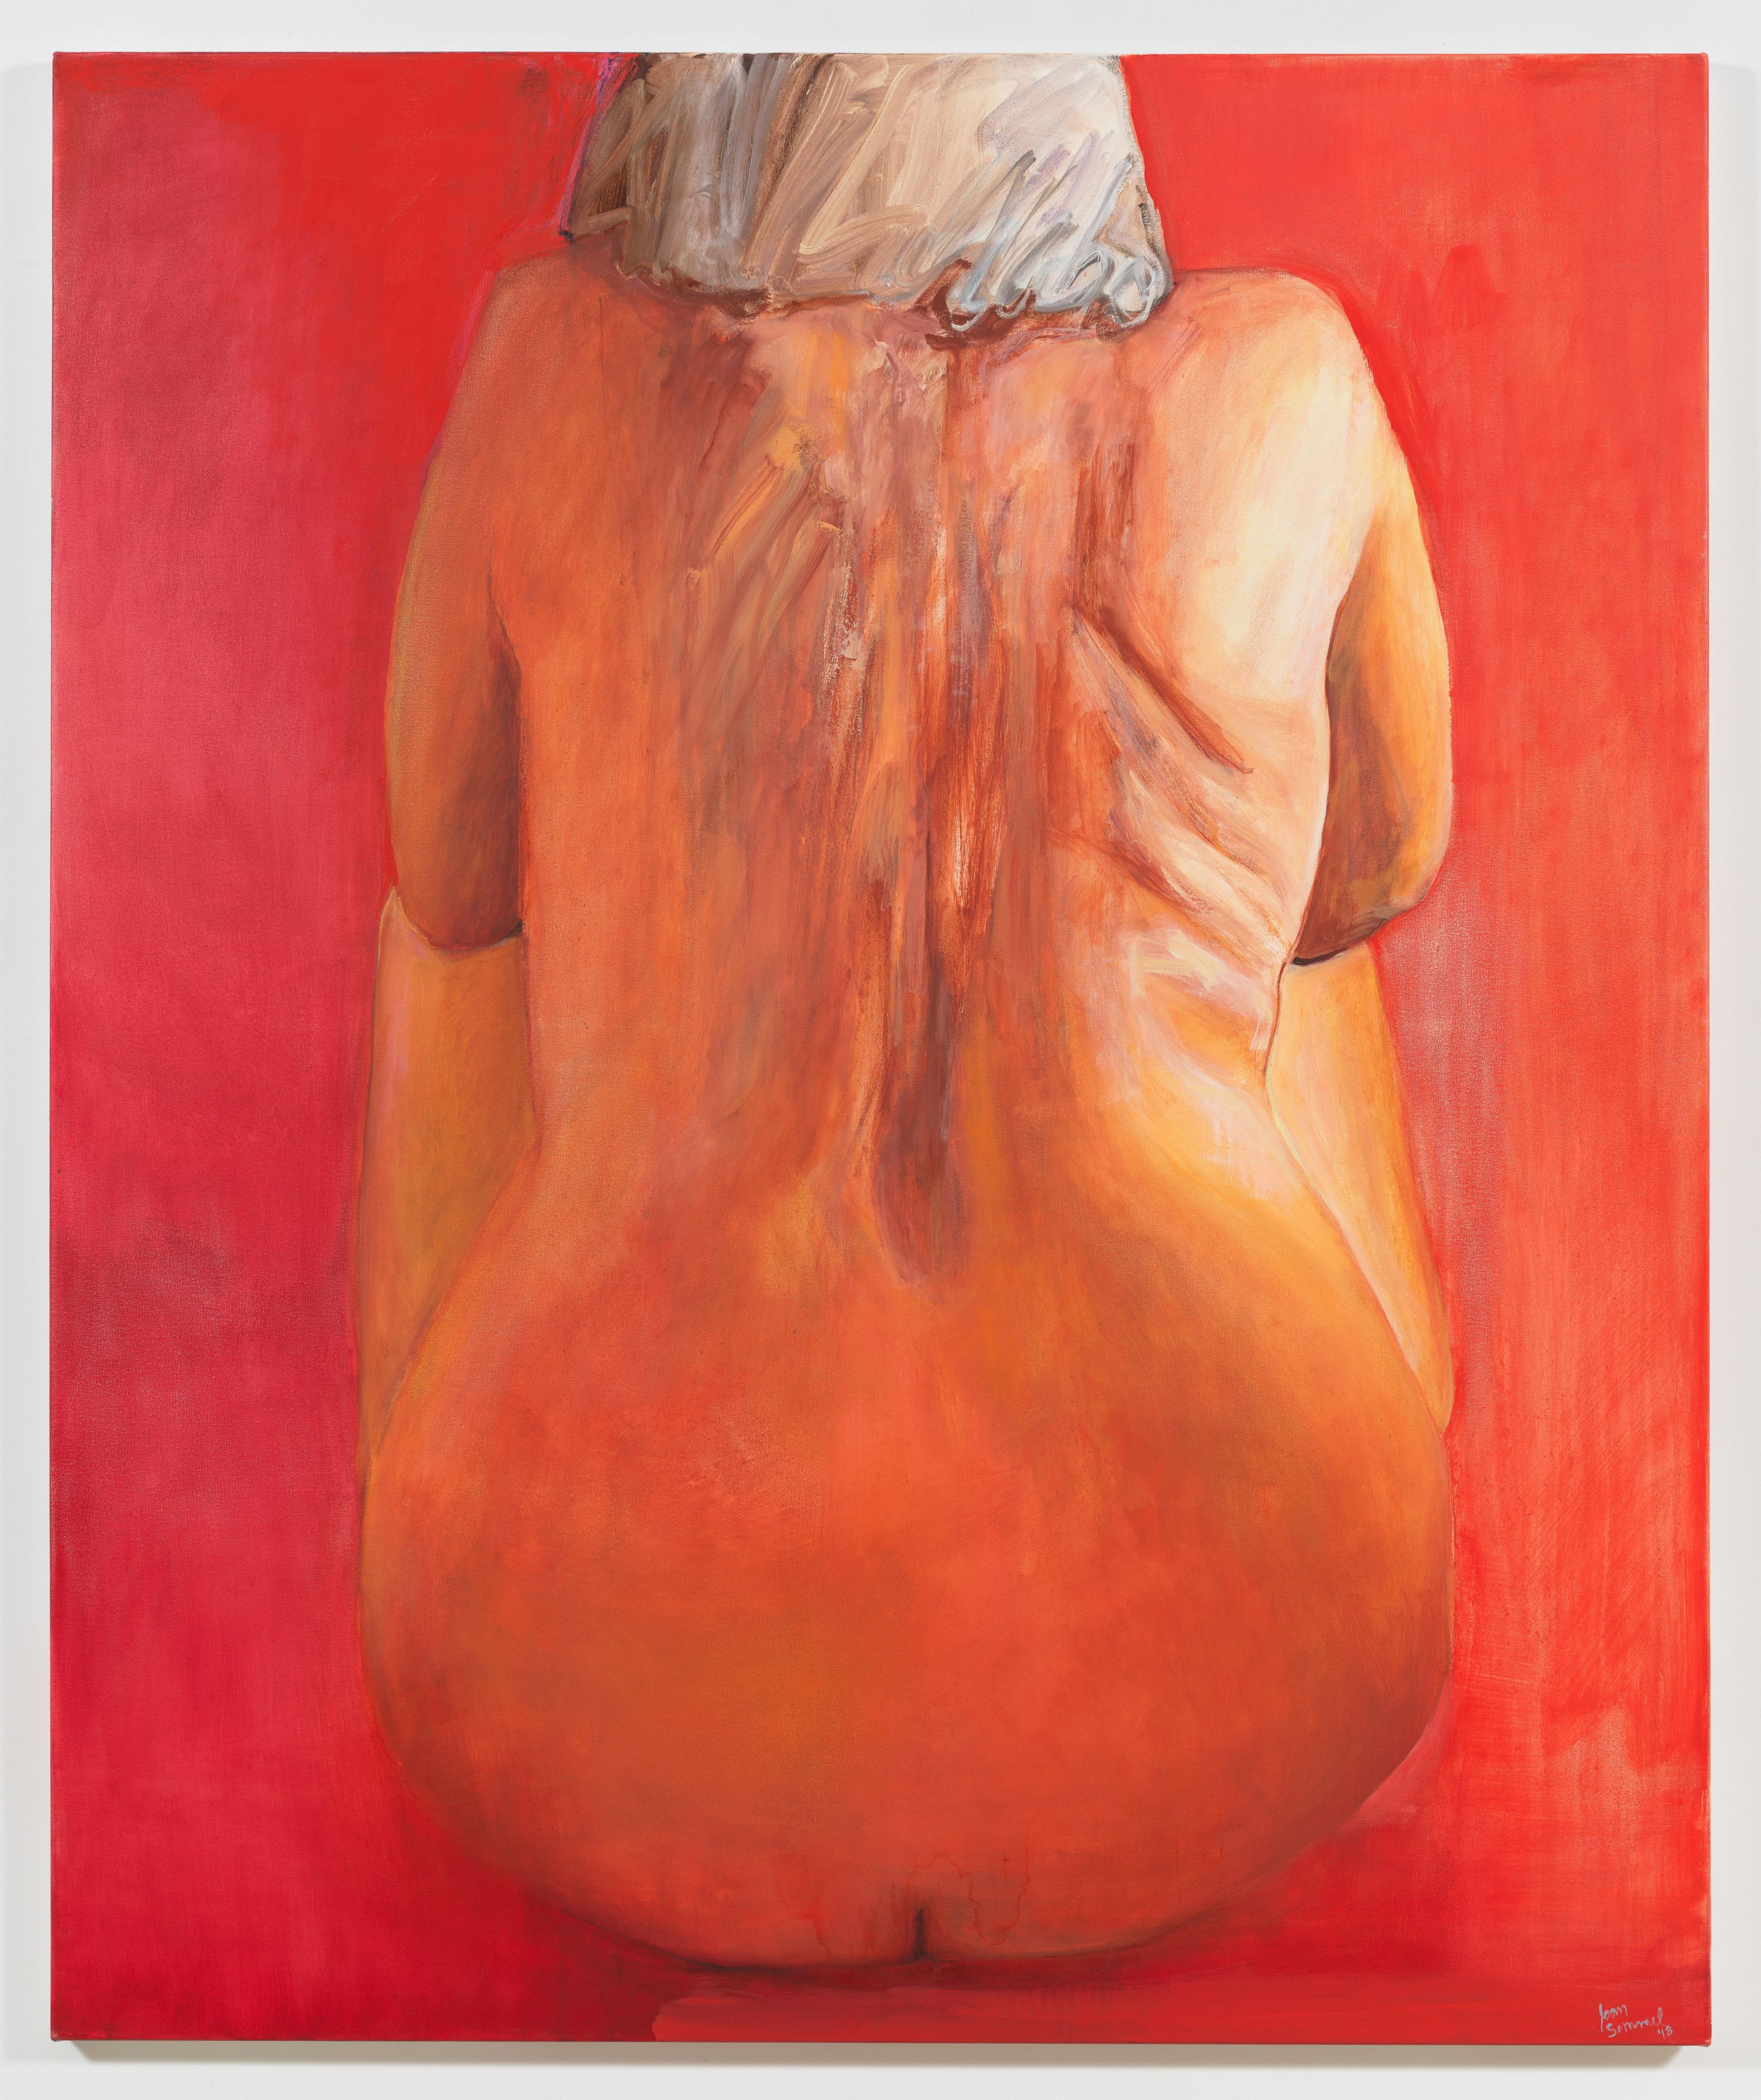 Seated in Red, 2018, Oil on canvas